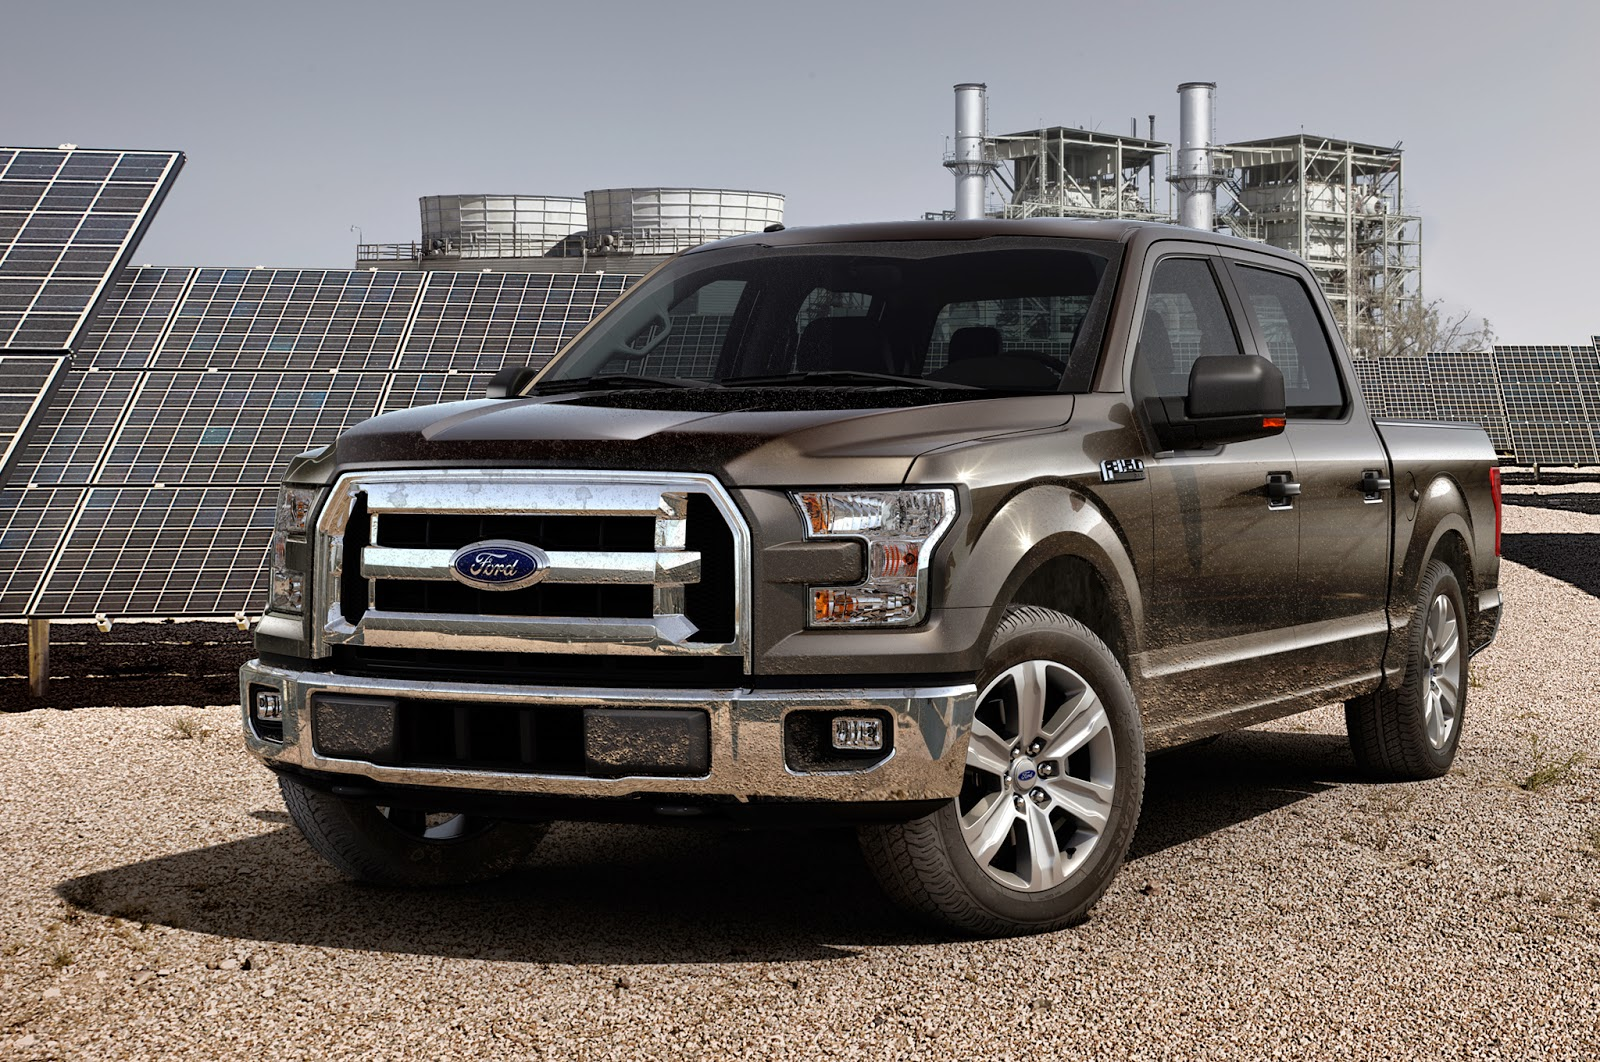 Ford F150 Raptor Technische Daten 1955 Chevy Headlight Wiring Diagram Best New Cars For 2015 F 150 Aluminum Cans Are All The Rage In Craft Brewing Industry Once A Symbol Of Cheap And Tasteless Beer Seal More Tightly Than Do Glass Bottles